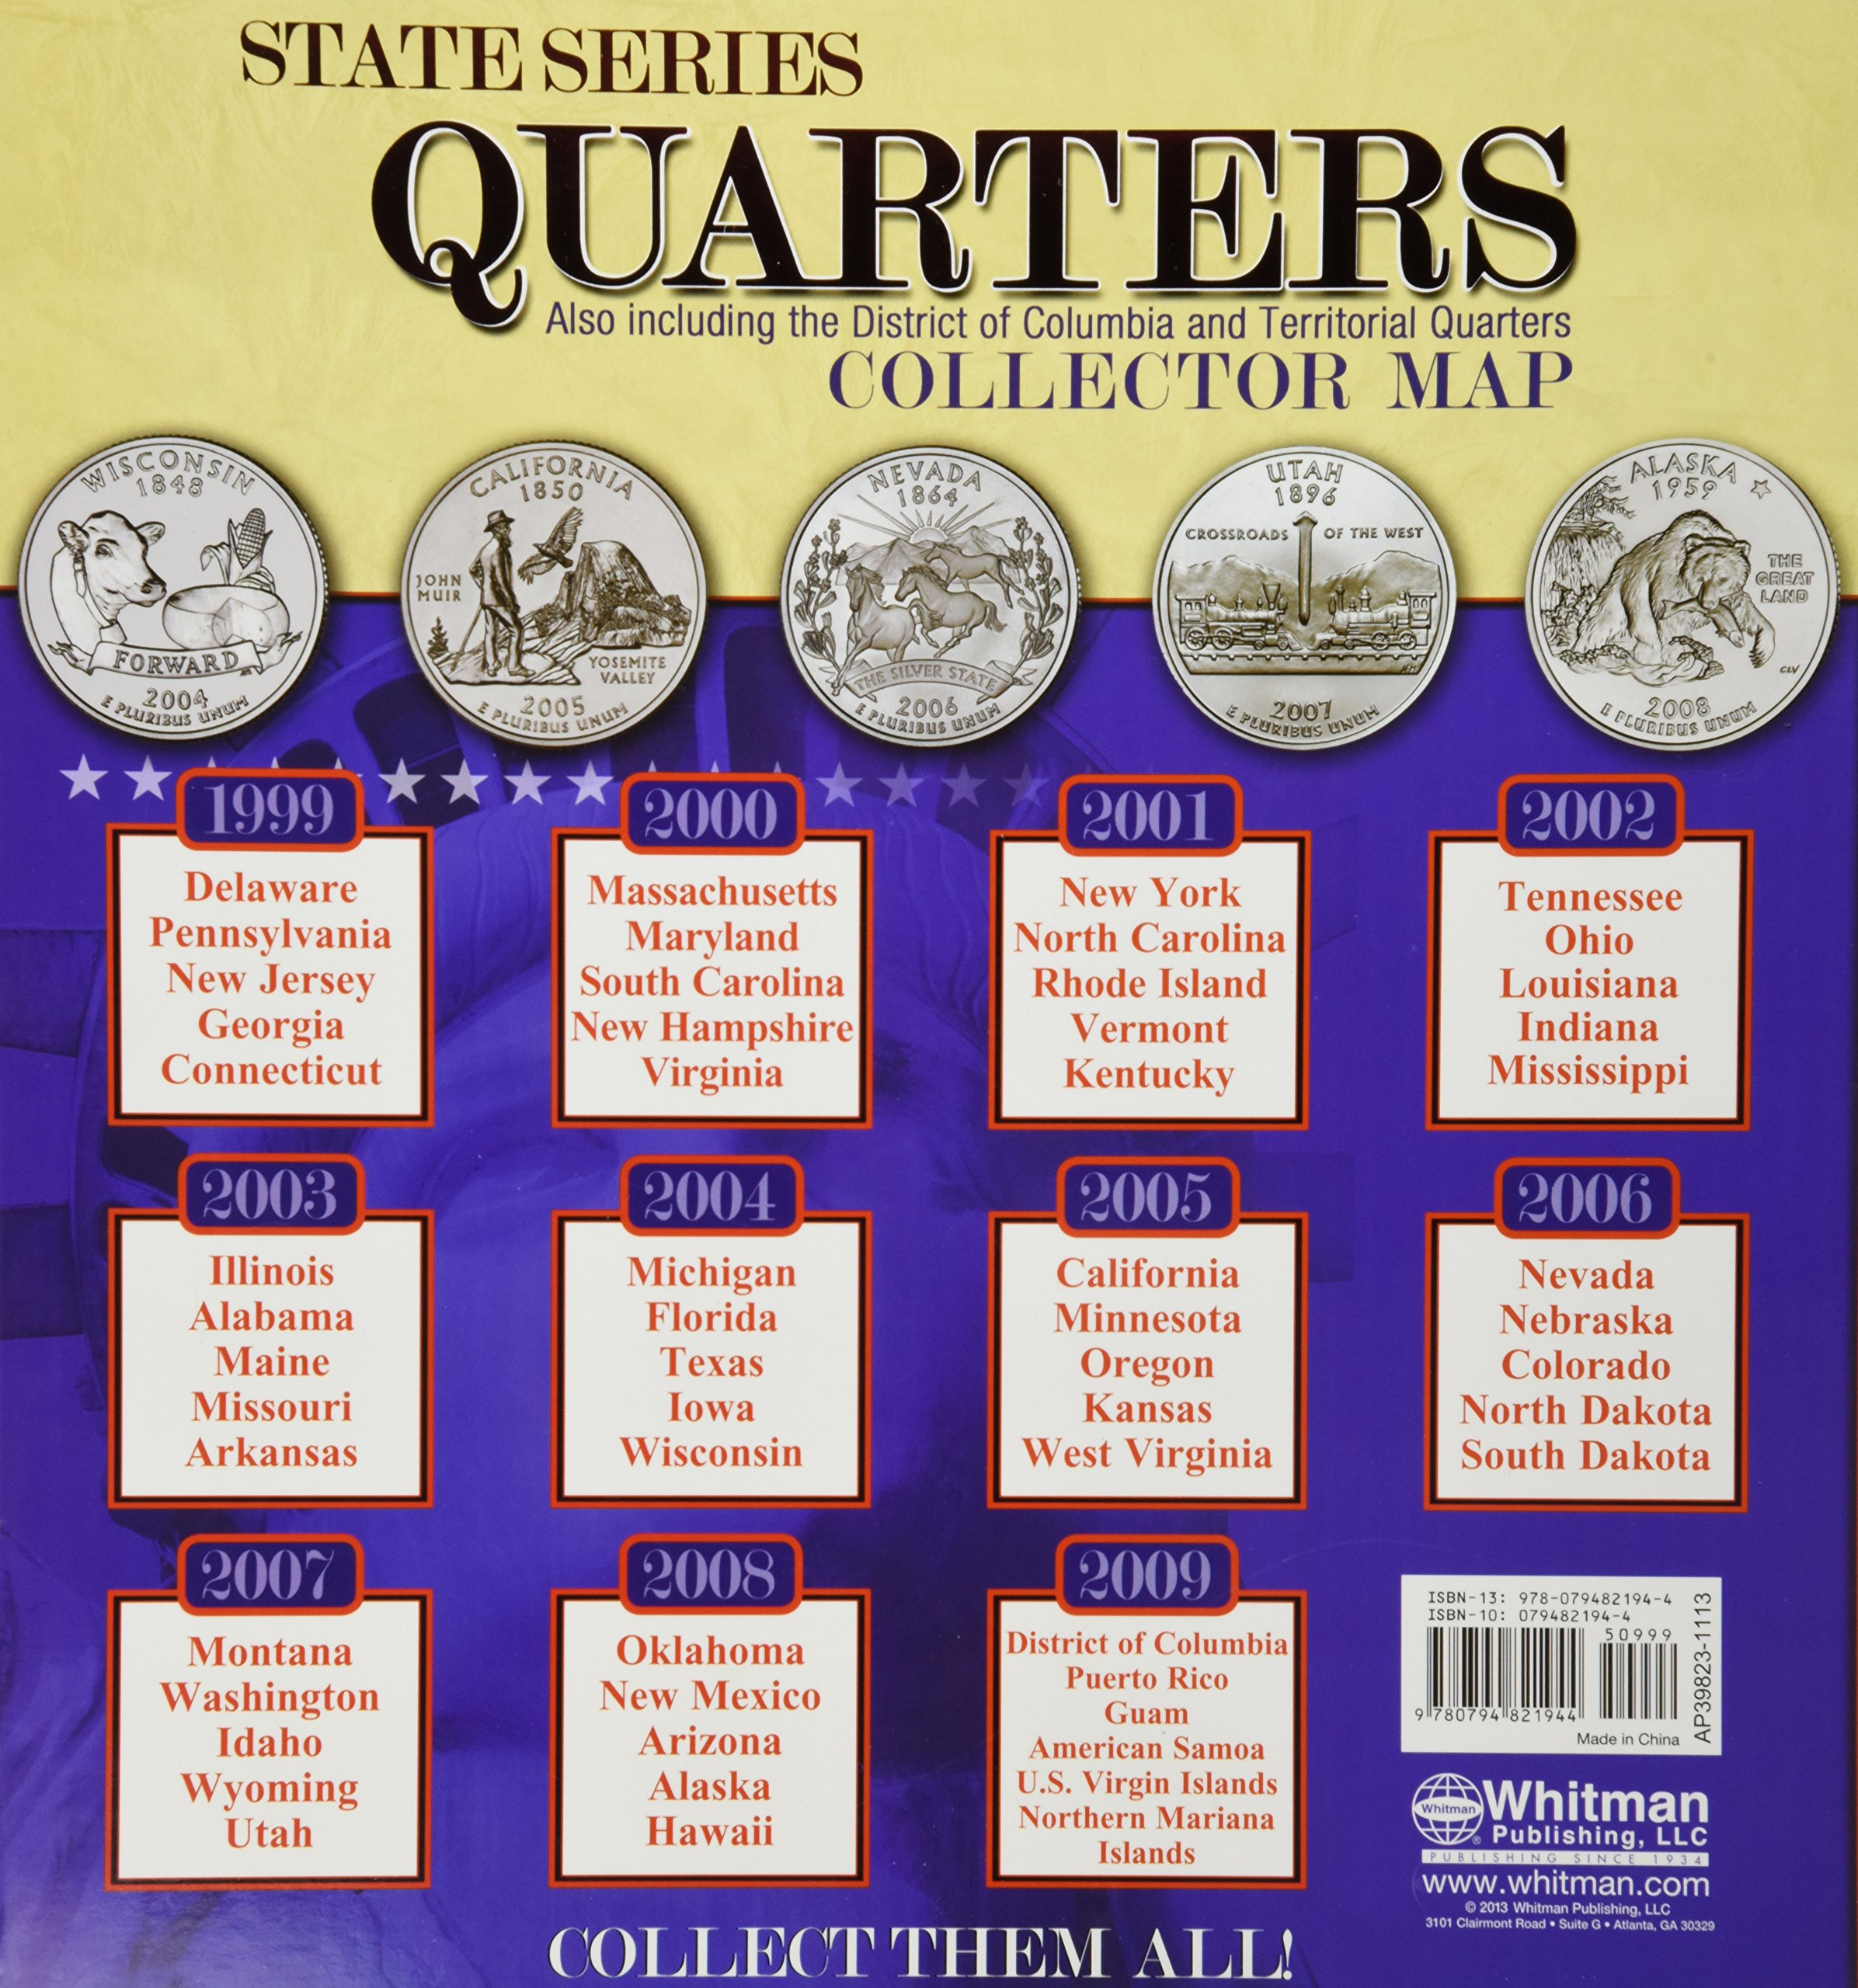 Amazoncom State Series Quarters Collector Map Also Including - Us national park quarters book